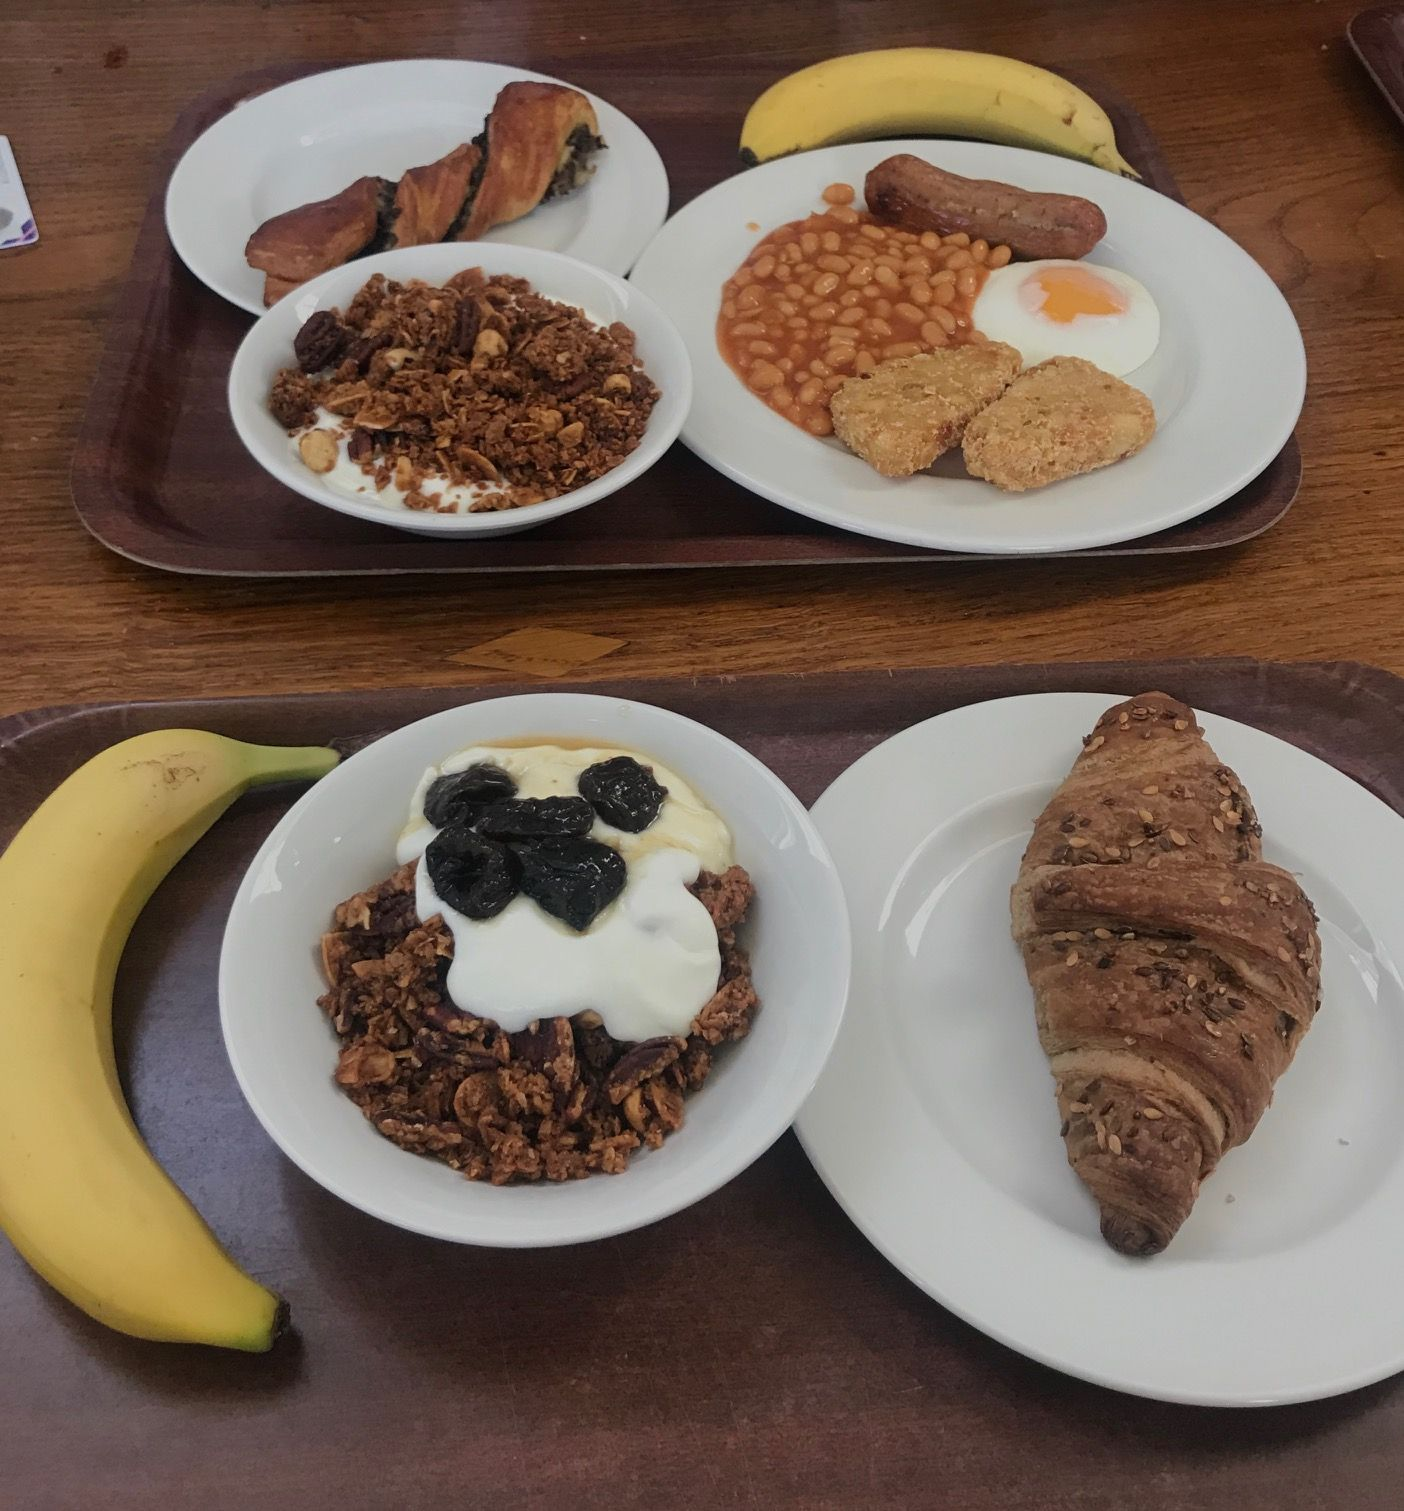 Image may contain: Pottery, Banana, Fruit, Bread, Breakfast, Meal, Dish, Food, Plant